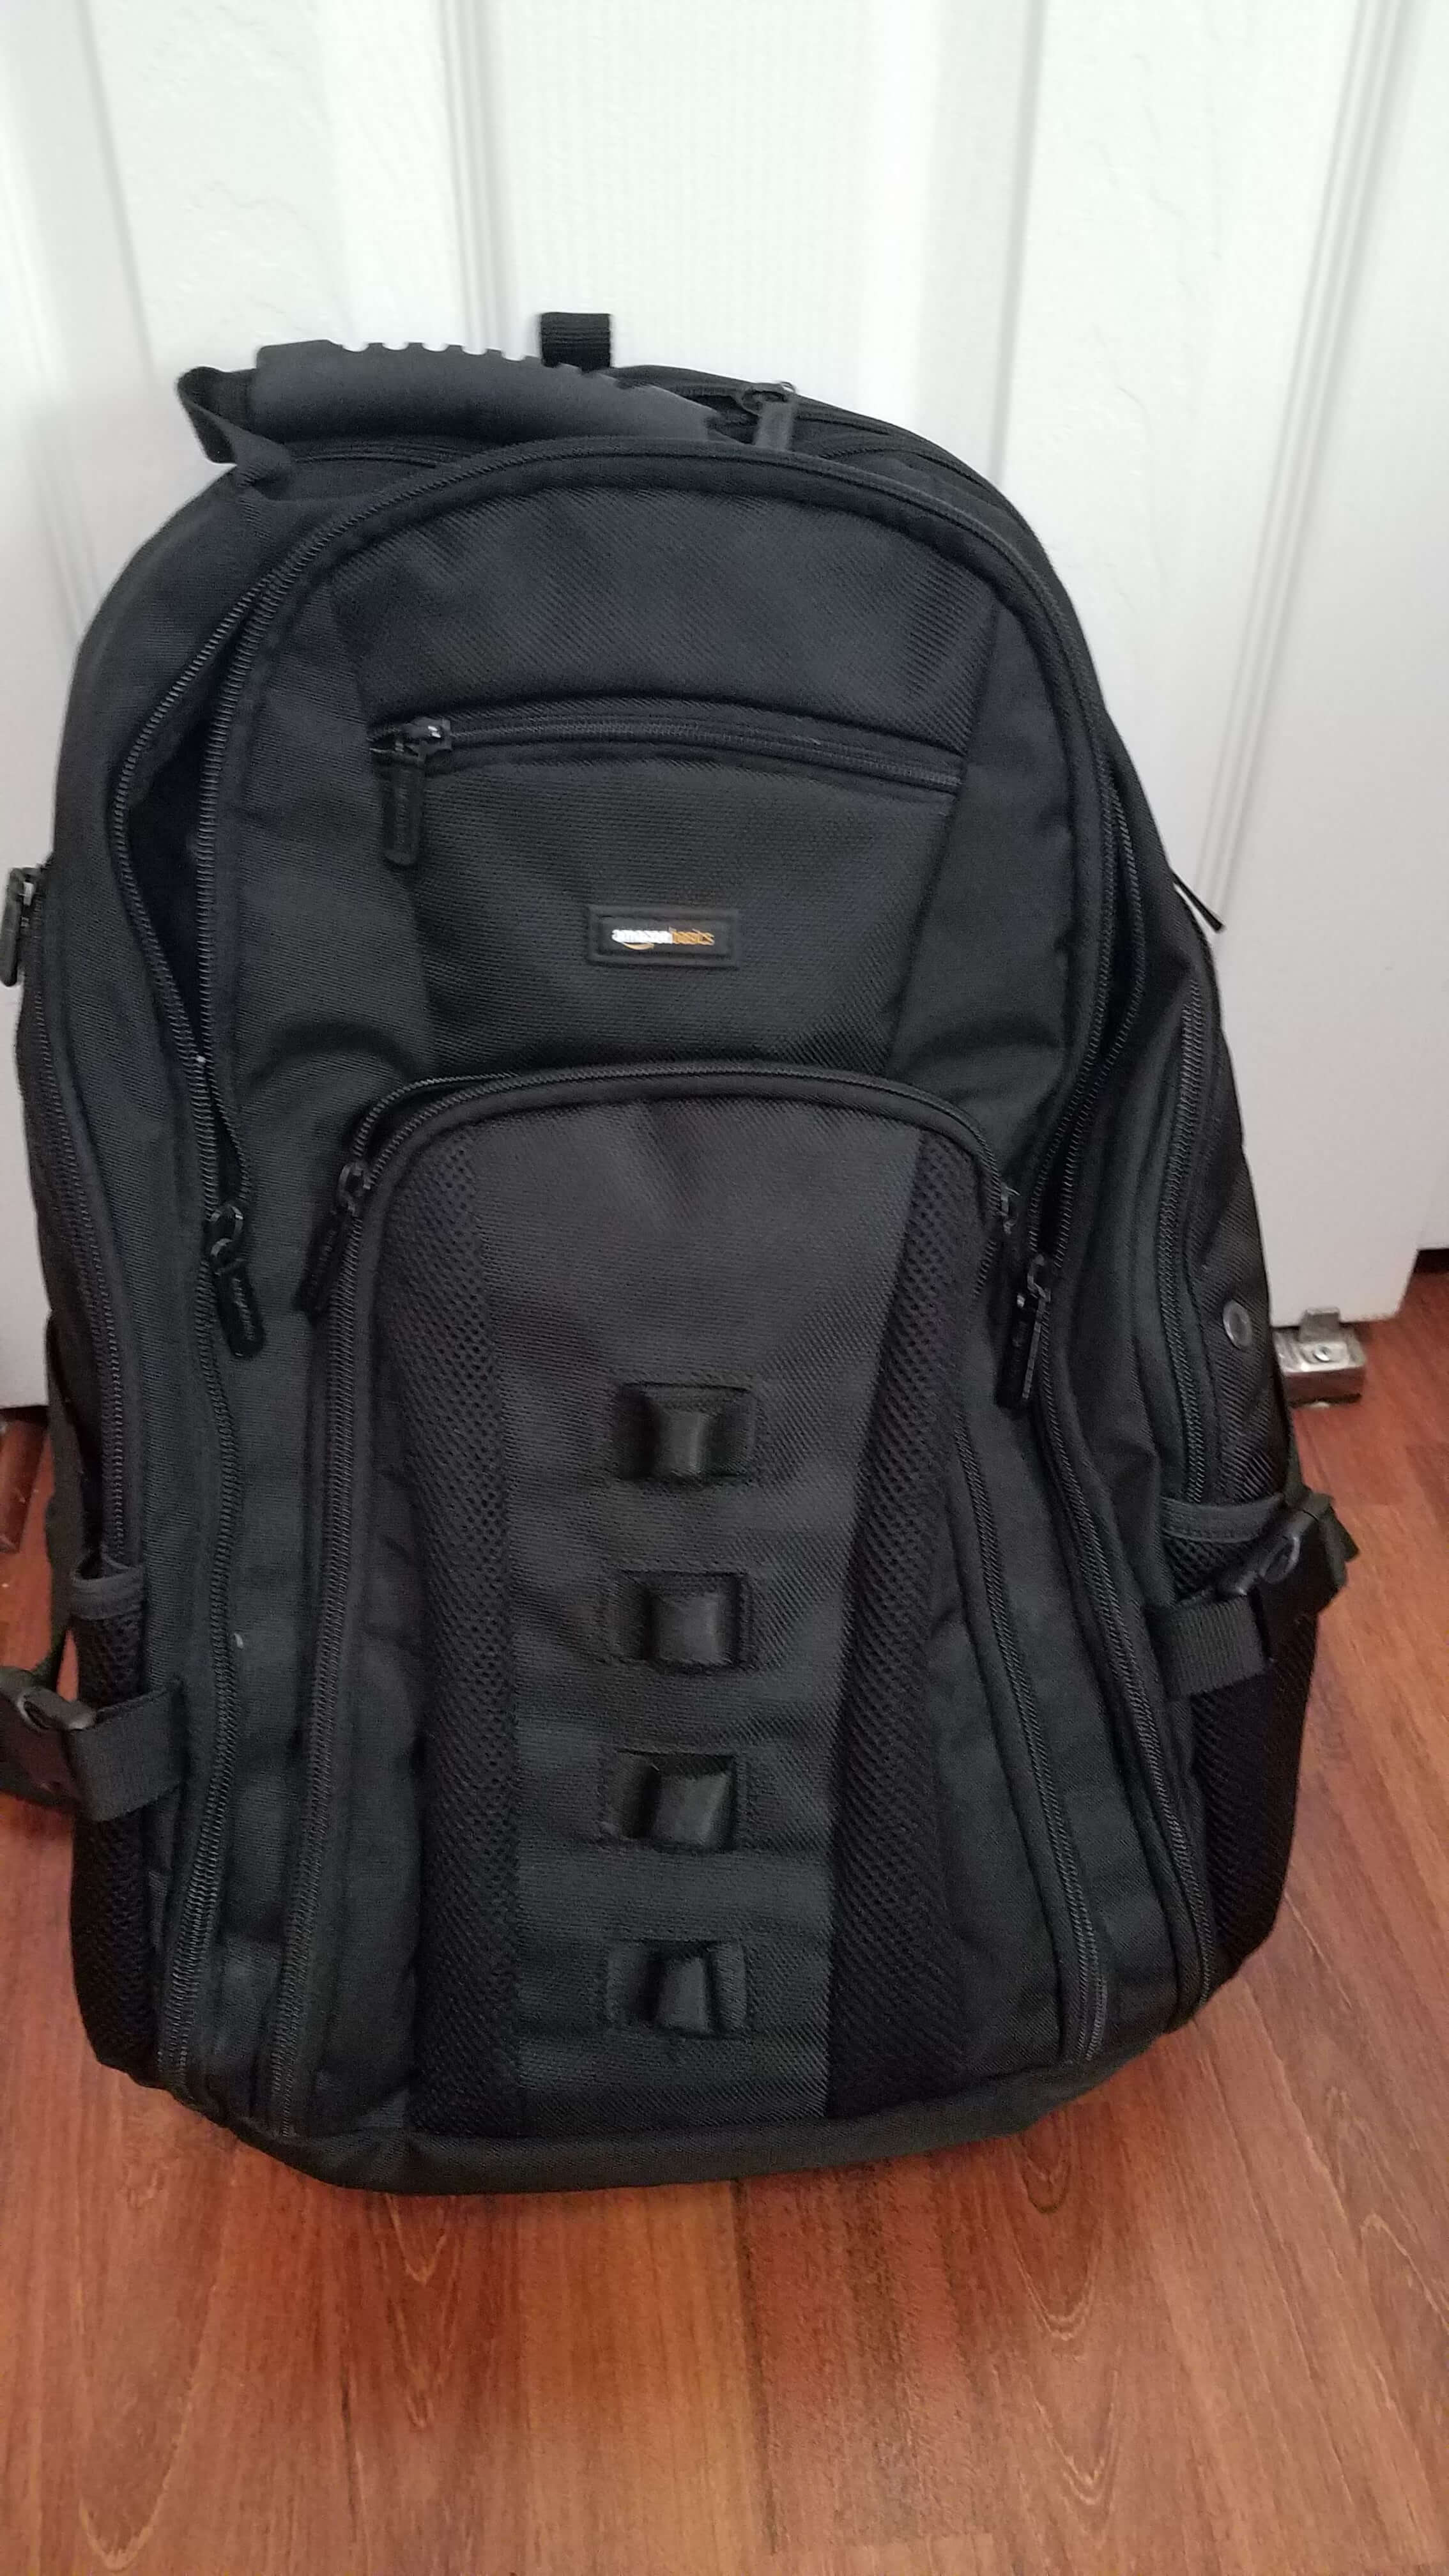 The best backpack for back pain